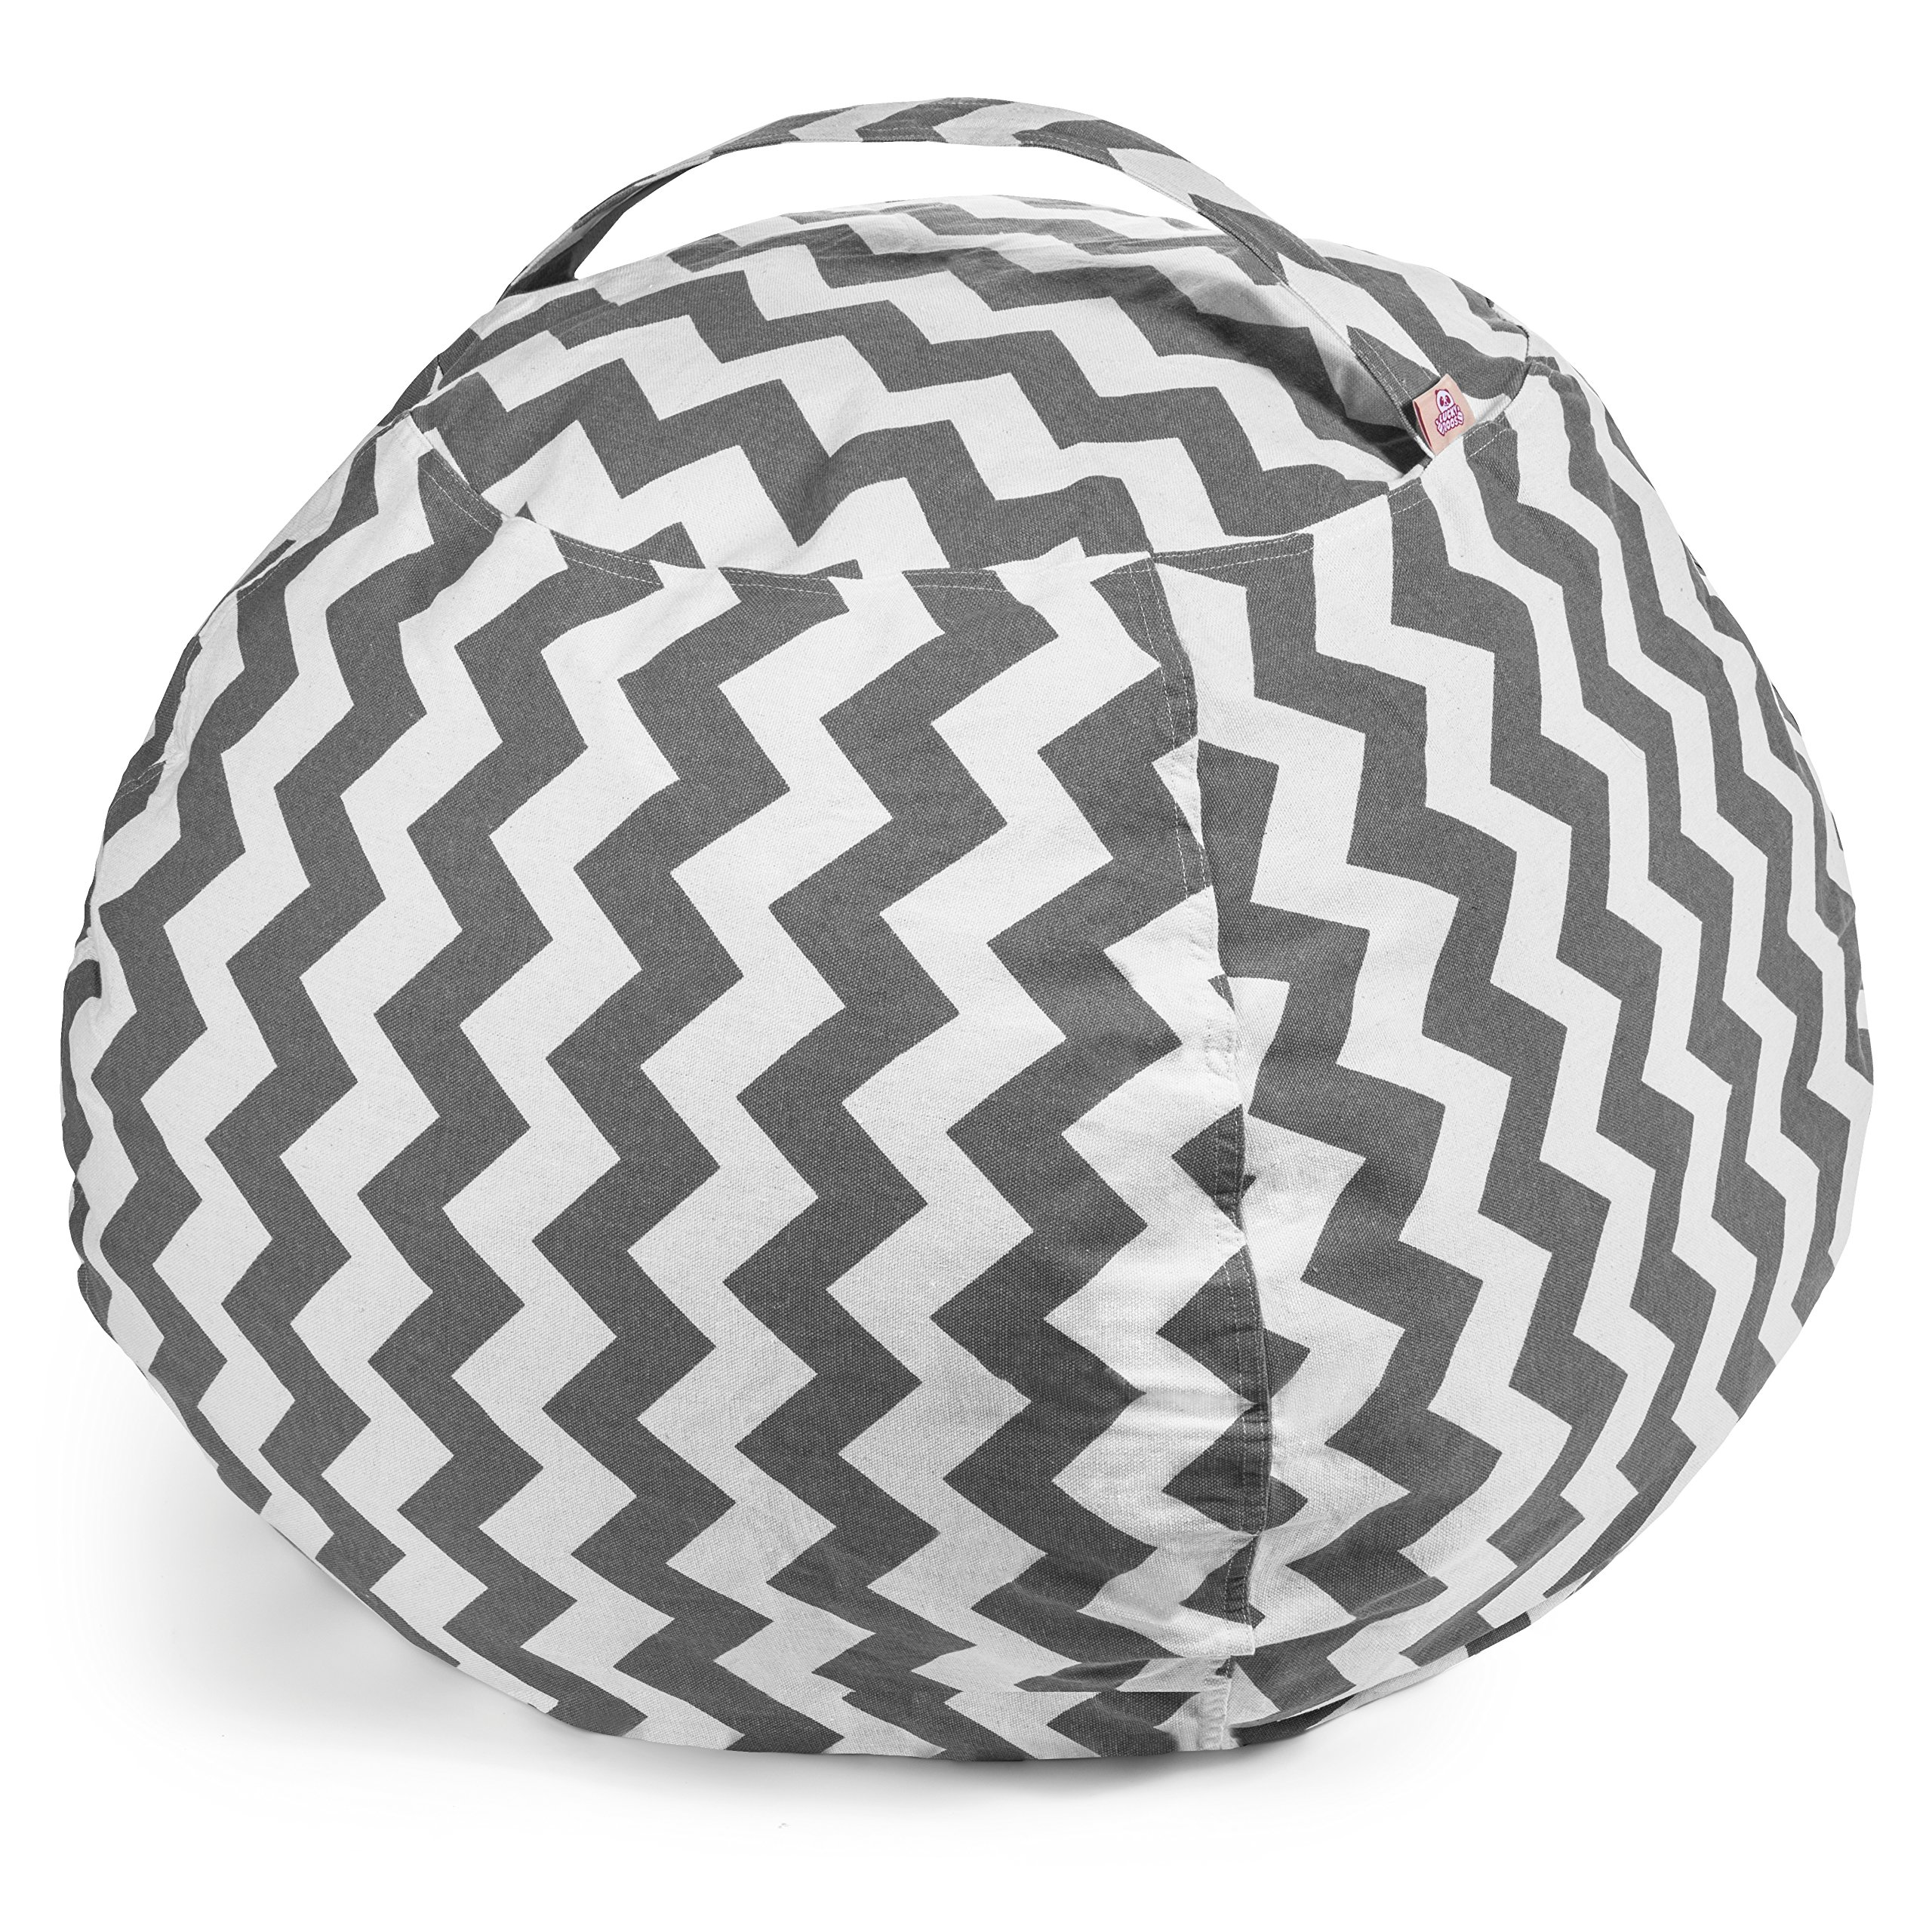 Lucky Doos Extra Large Stuffed Animal Bean Bag Chair - 38'' Soft Jumbo Cover and Grey Chevron Cotton Canvas for Kids - Teddy Bear and Plush Stuffable - XL Chairs and Toy Storage